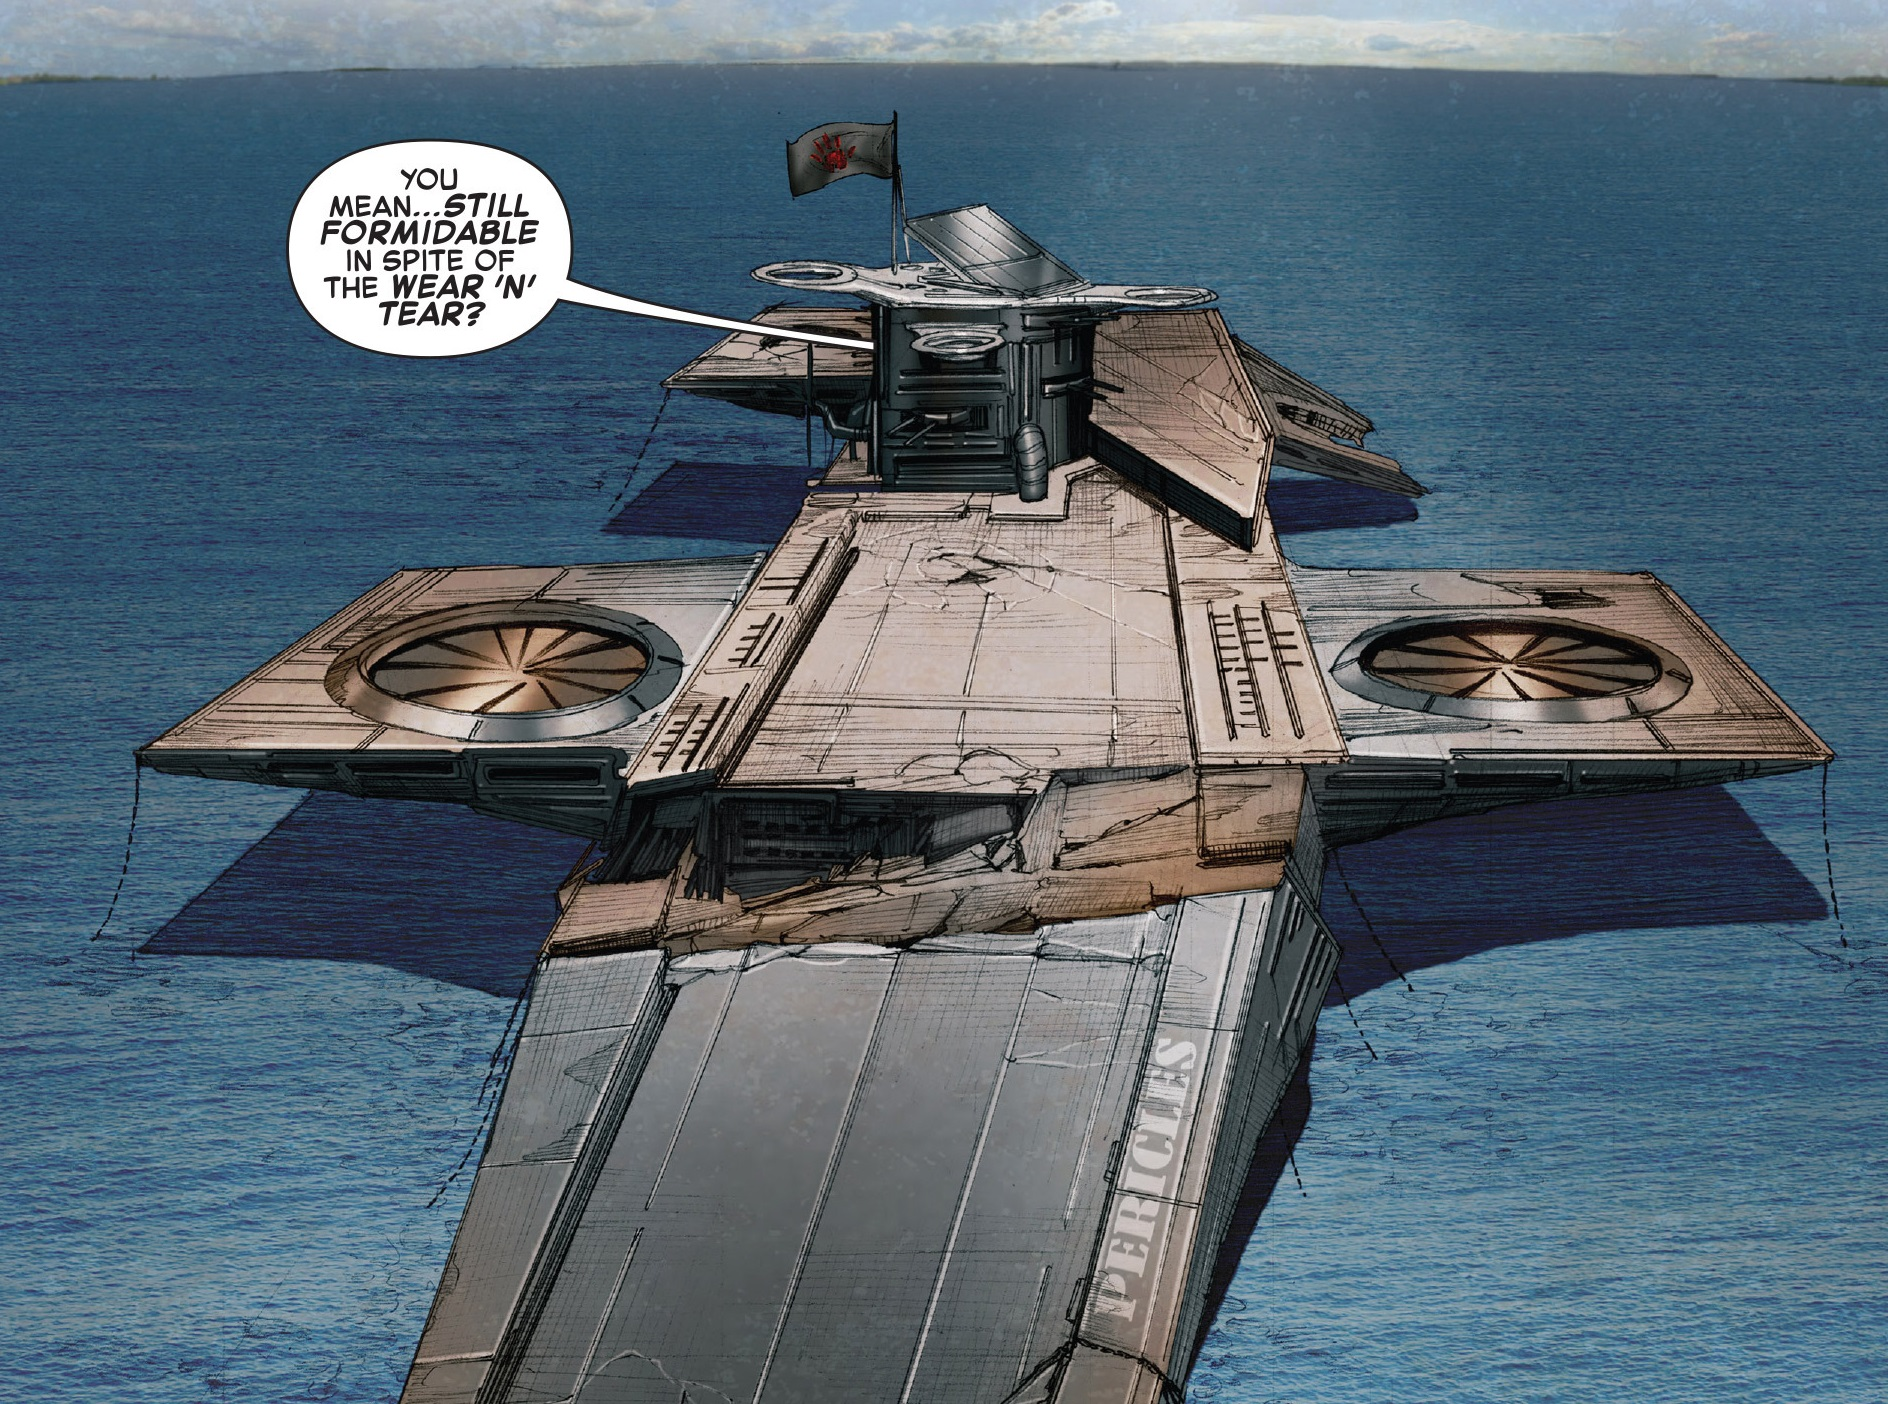 S.H.I.E.L.D. Helicarrier Pericles